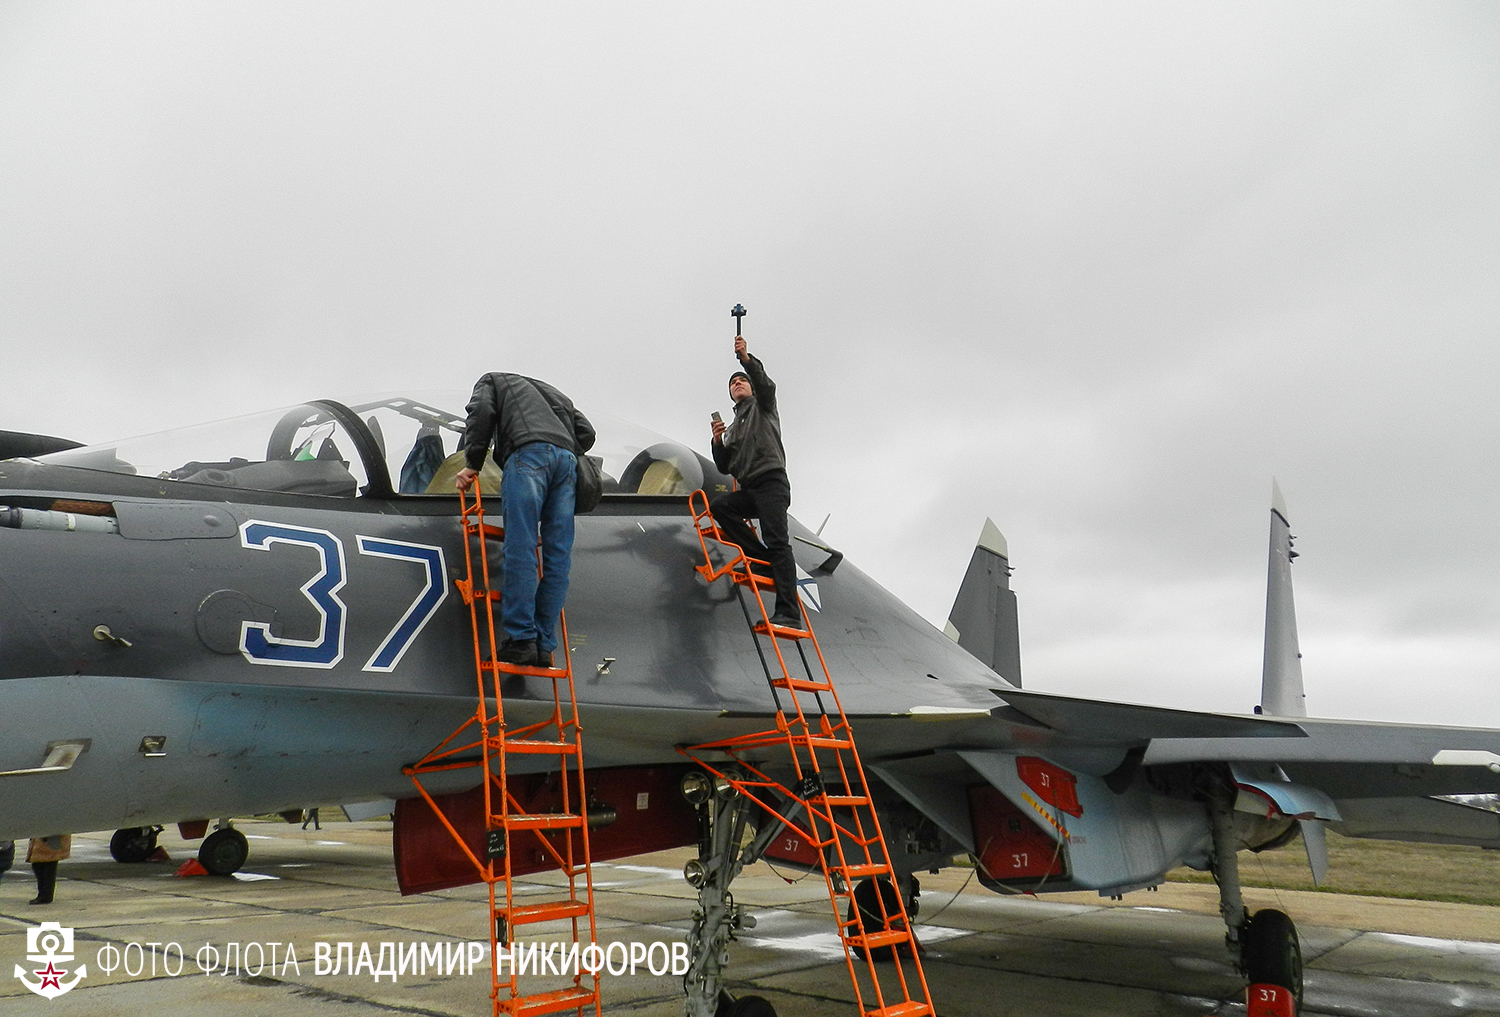 SU-30MKI (Flanker H by NATO). 0_d1c41_4d983d4f_orig